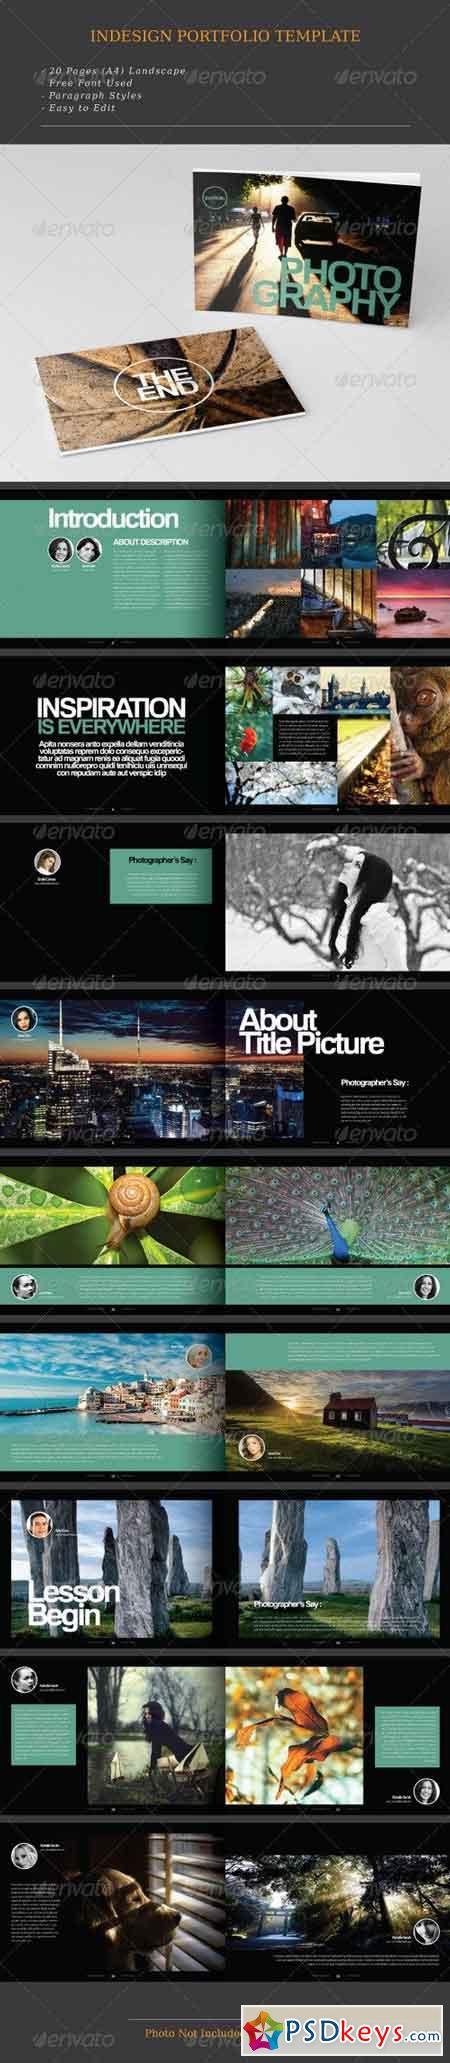 Indesign Photography Portfolio 7558538